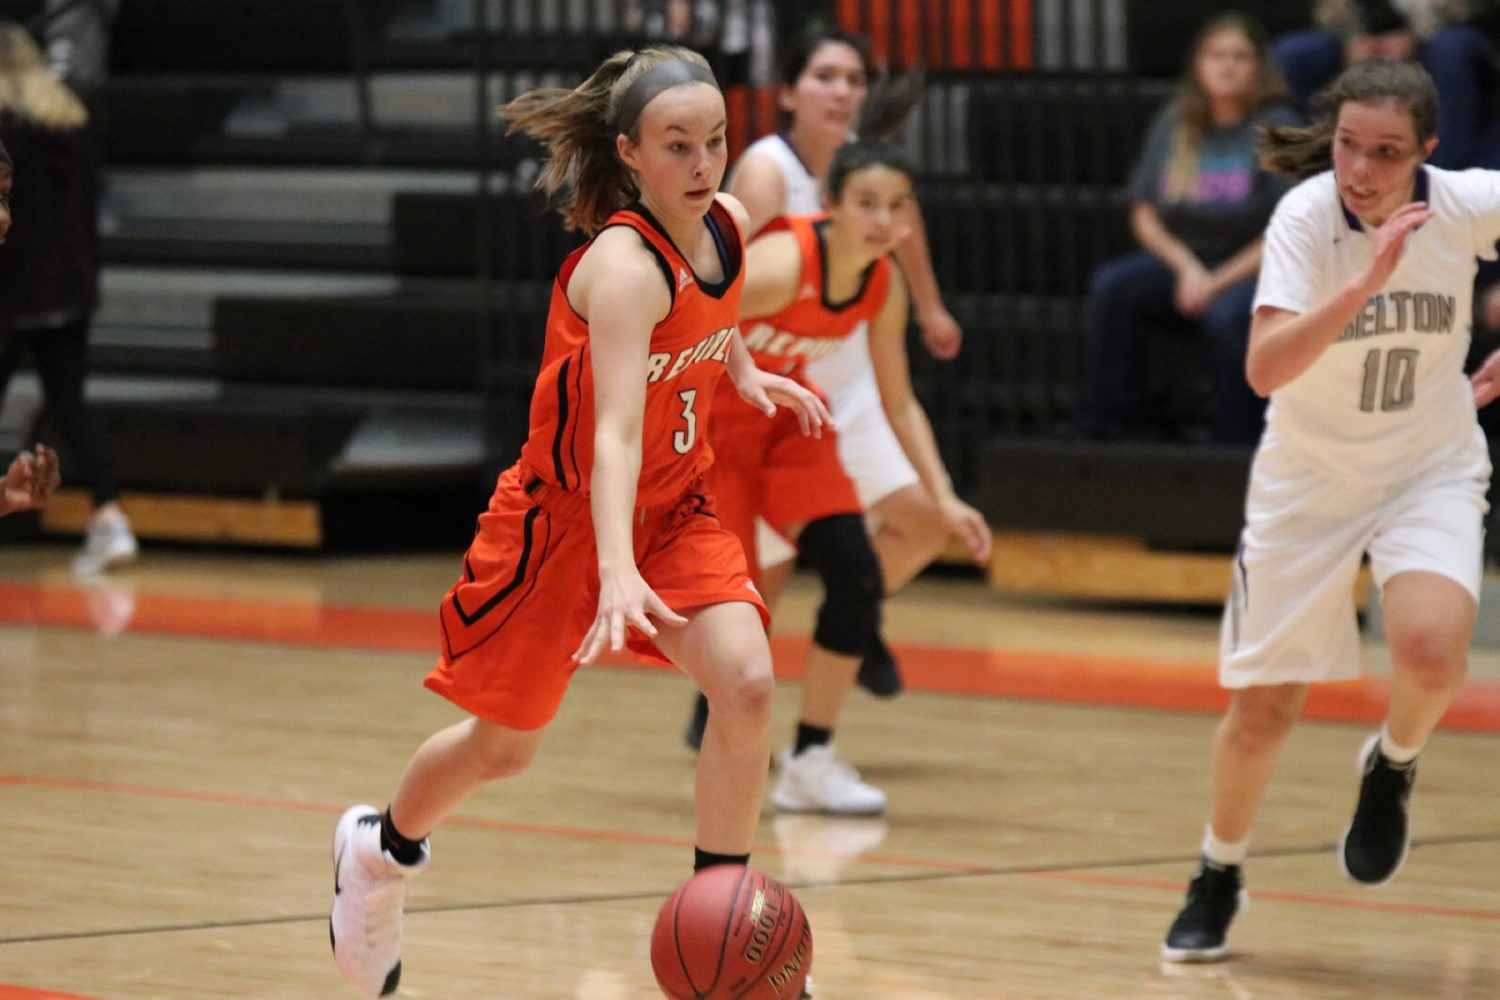 Photos: JV Girls Basketball Vs Belton